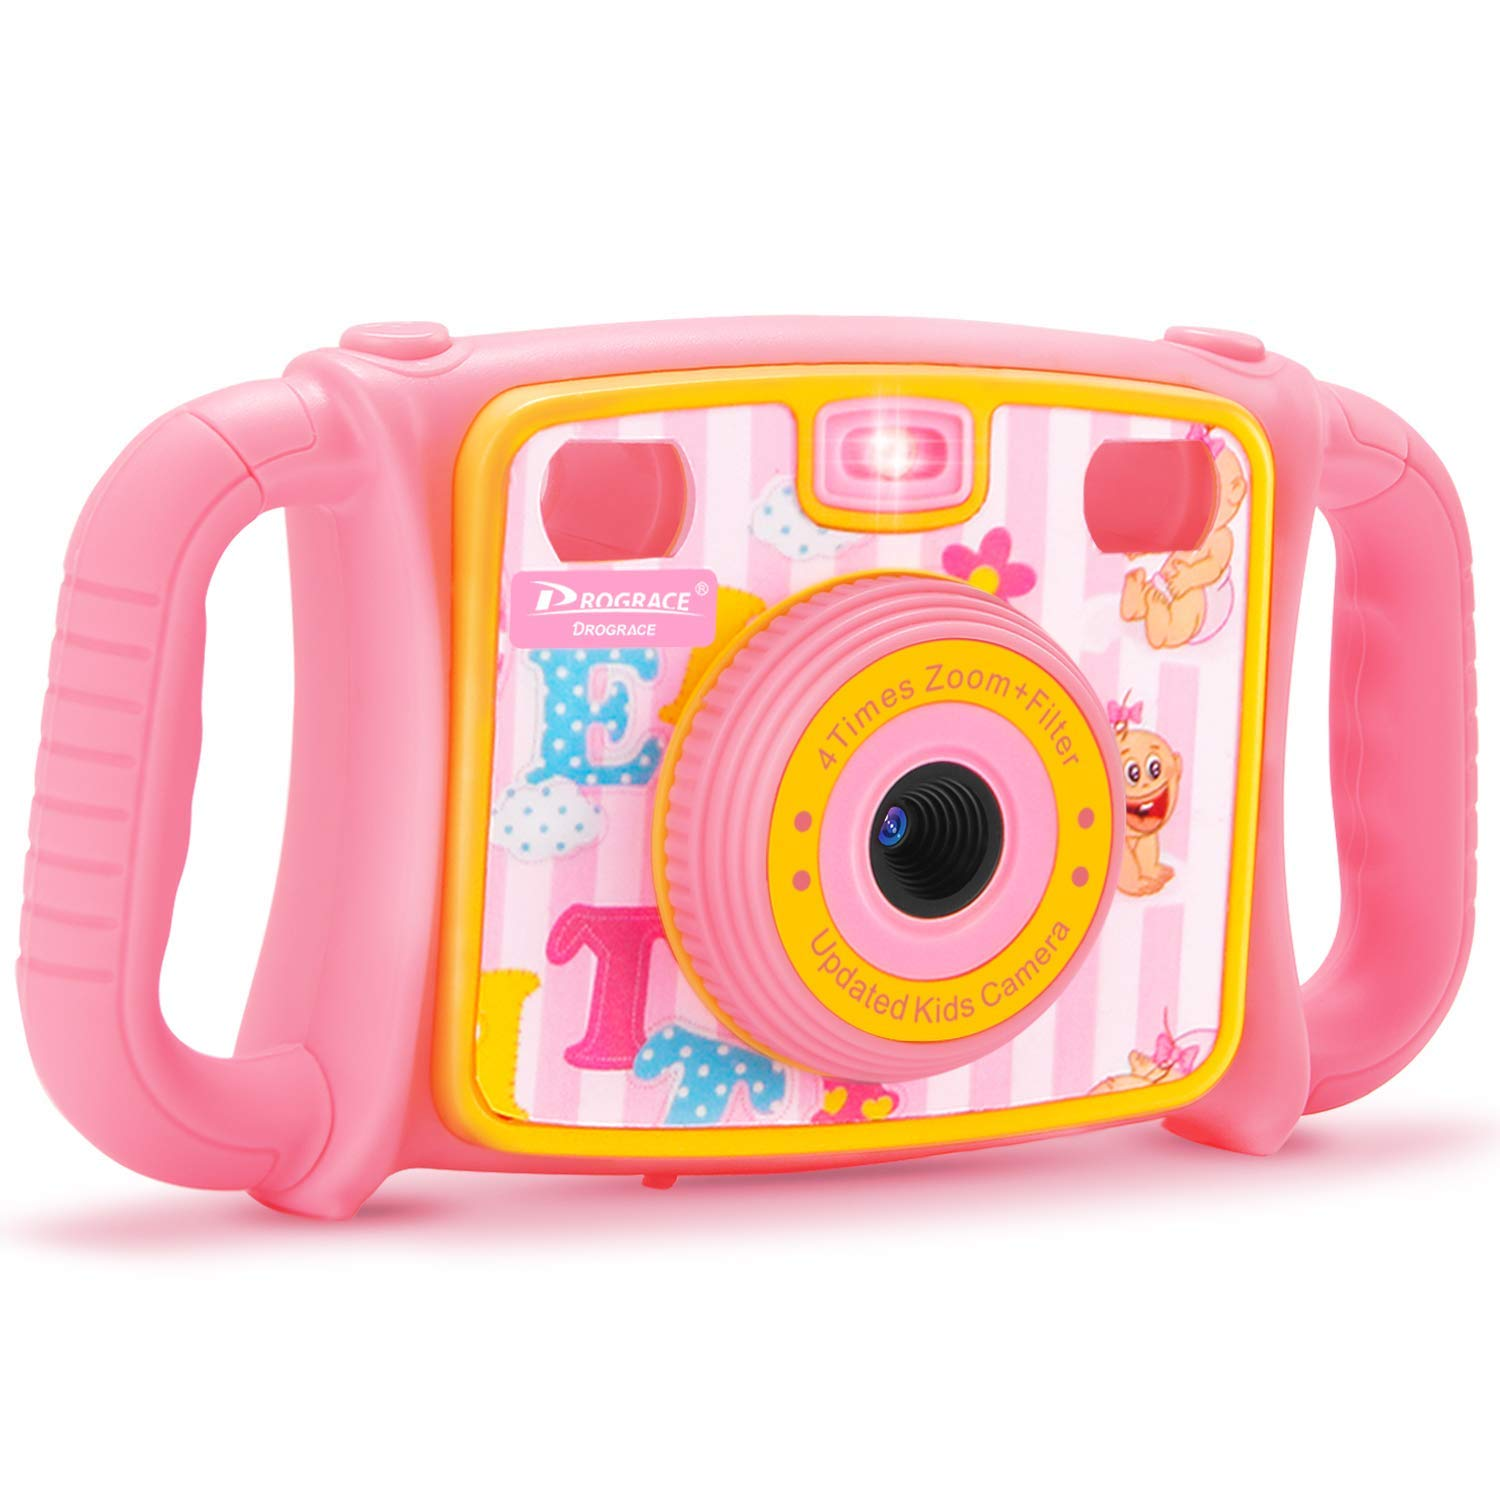 Prograce Kids Camera Creative Camera 1080P HD Video Recorder Digital Action Camera Camcorder for Boys Girls Gifts 2.0'' LCD Screen with 4X Digital Zoom and Funny Game(Pink)